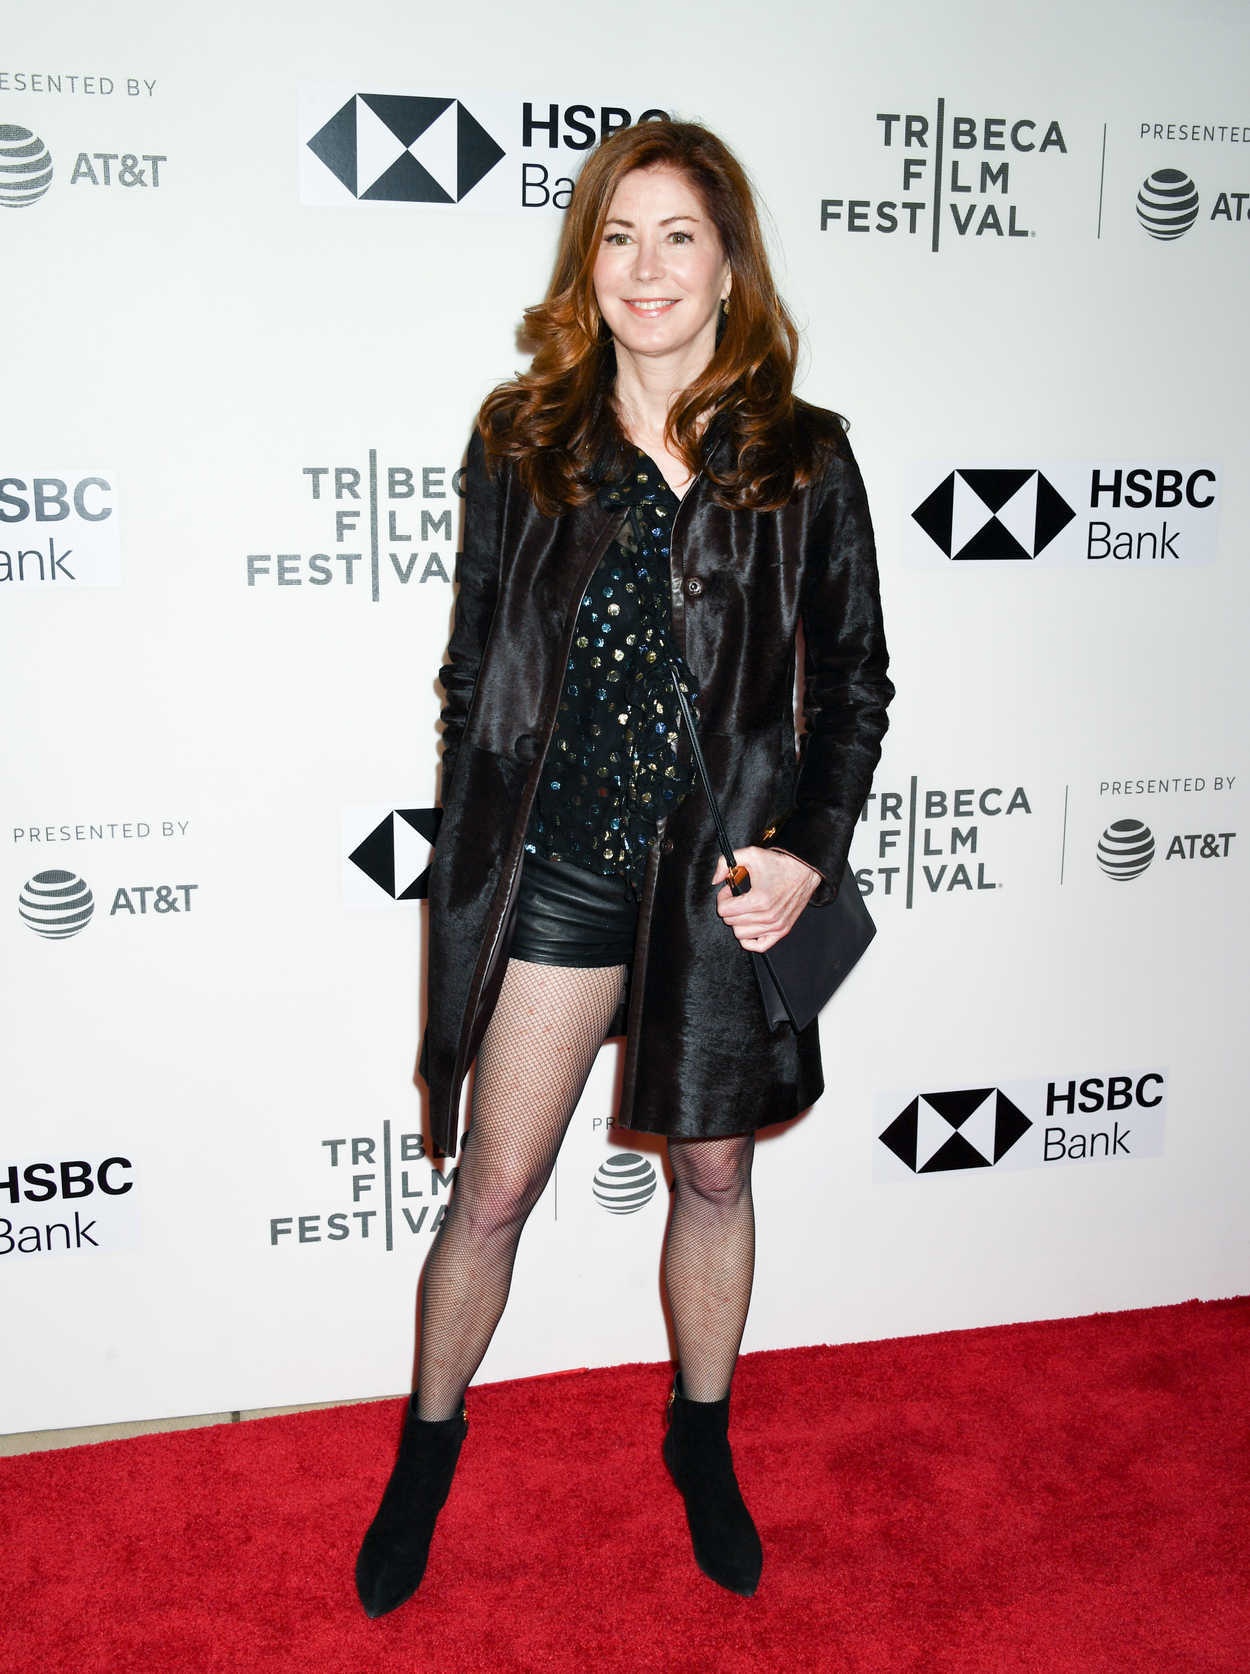 St Jude Heritage >> Dana Delany at The Seagull Premiere During the Tribeca Film Festival in New York City 04/21/2018 ...